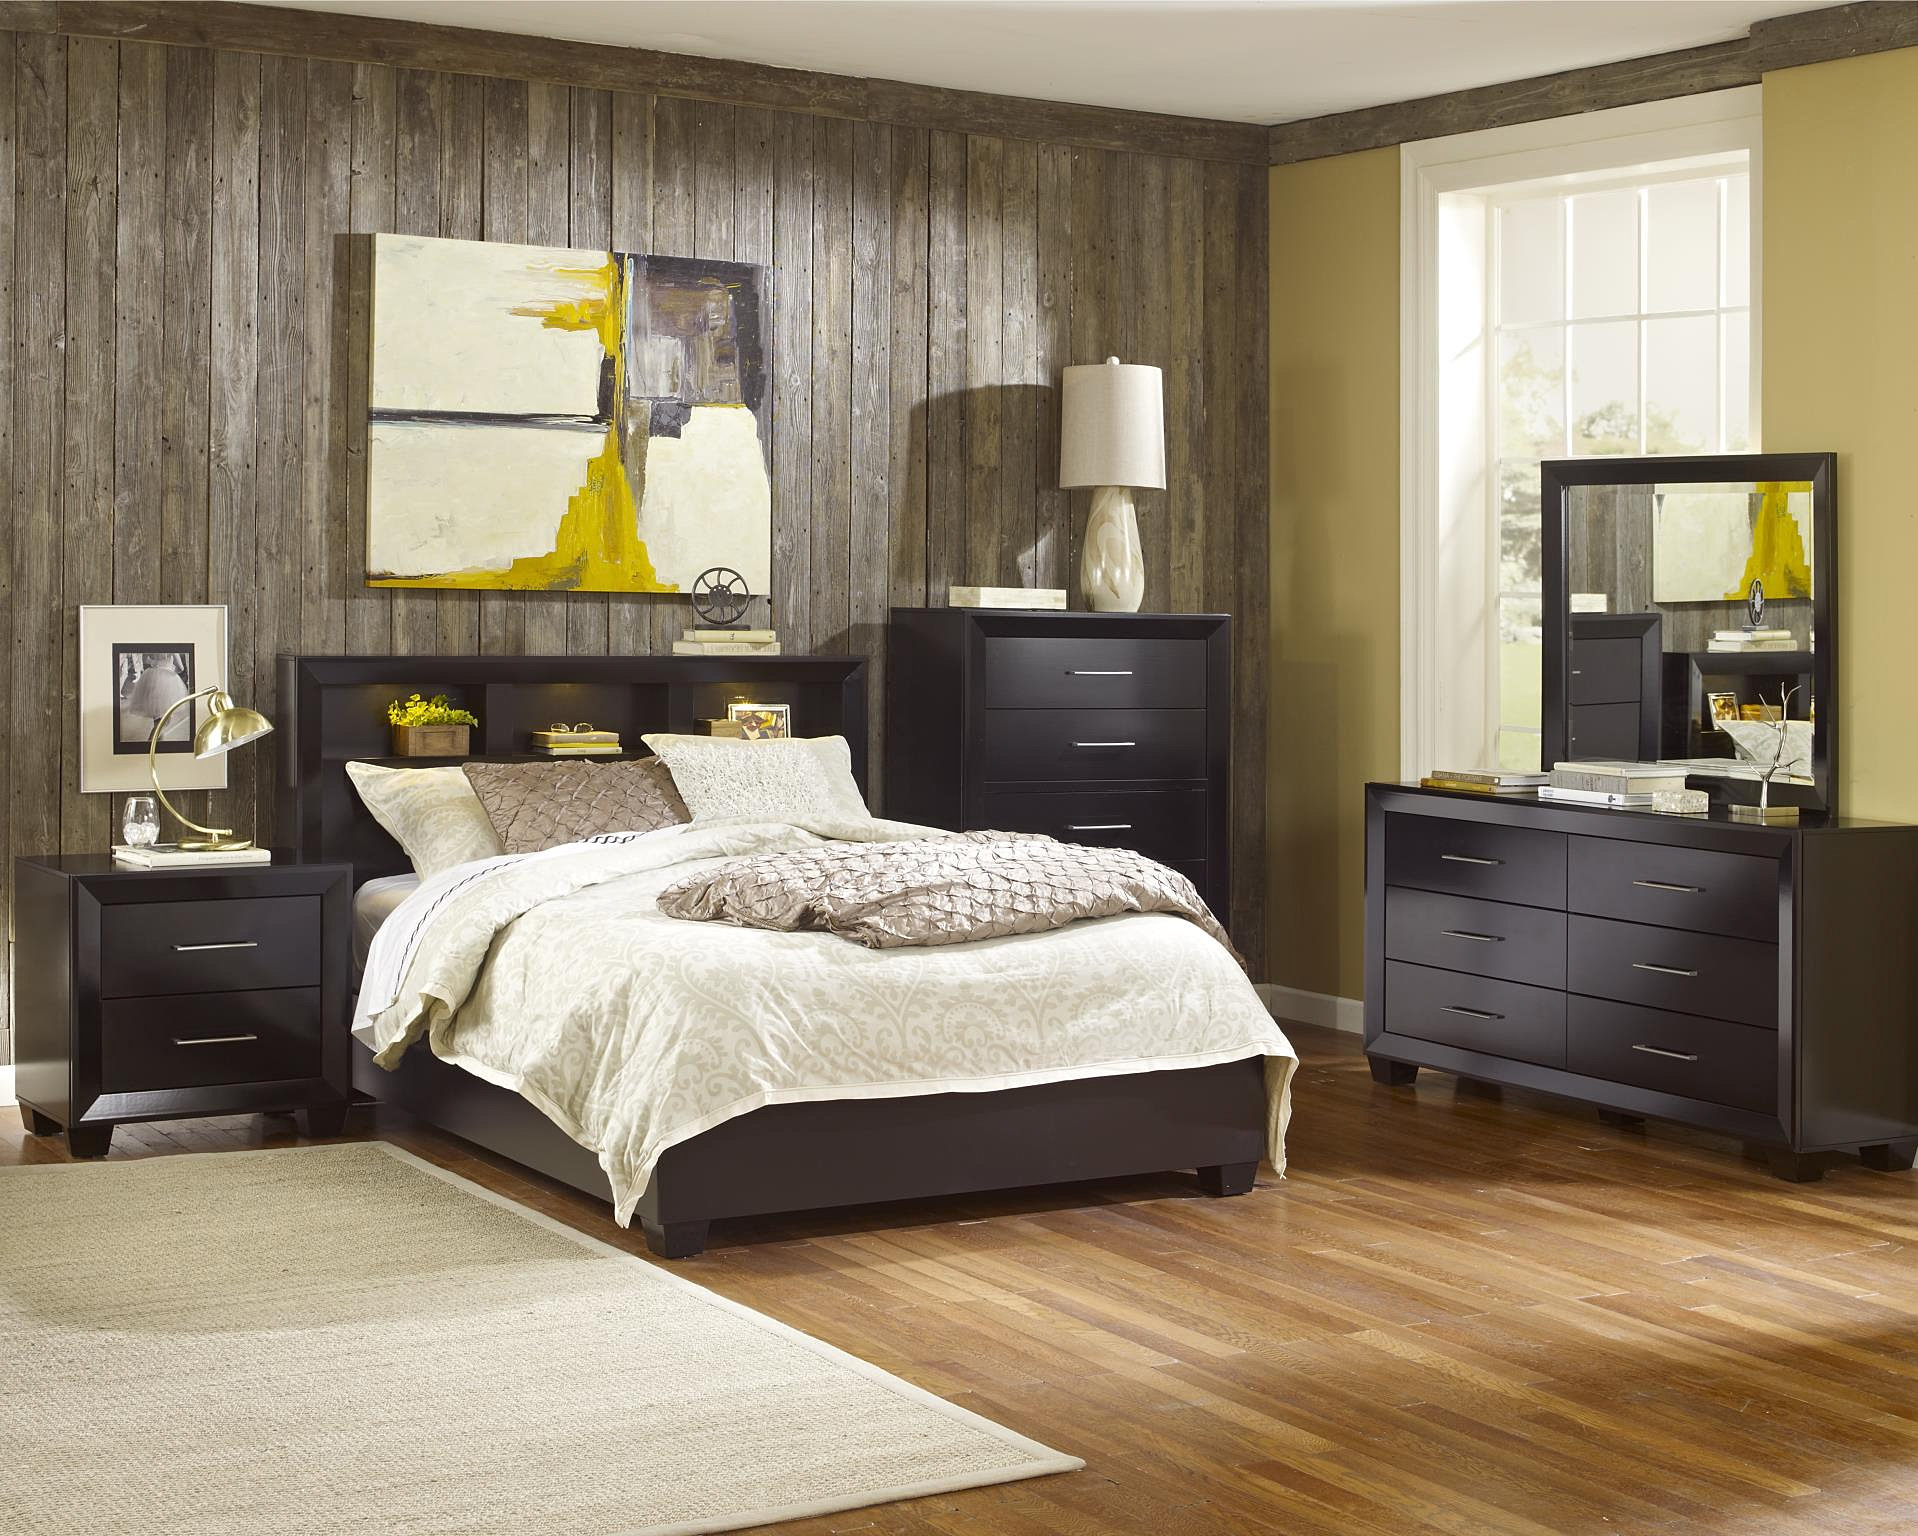 Lang Bedroom Furniture Aaa Furniture Outlet Albany Sofas Bedrooms